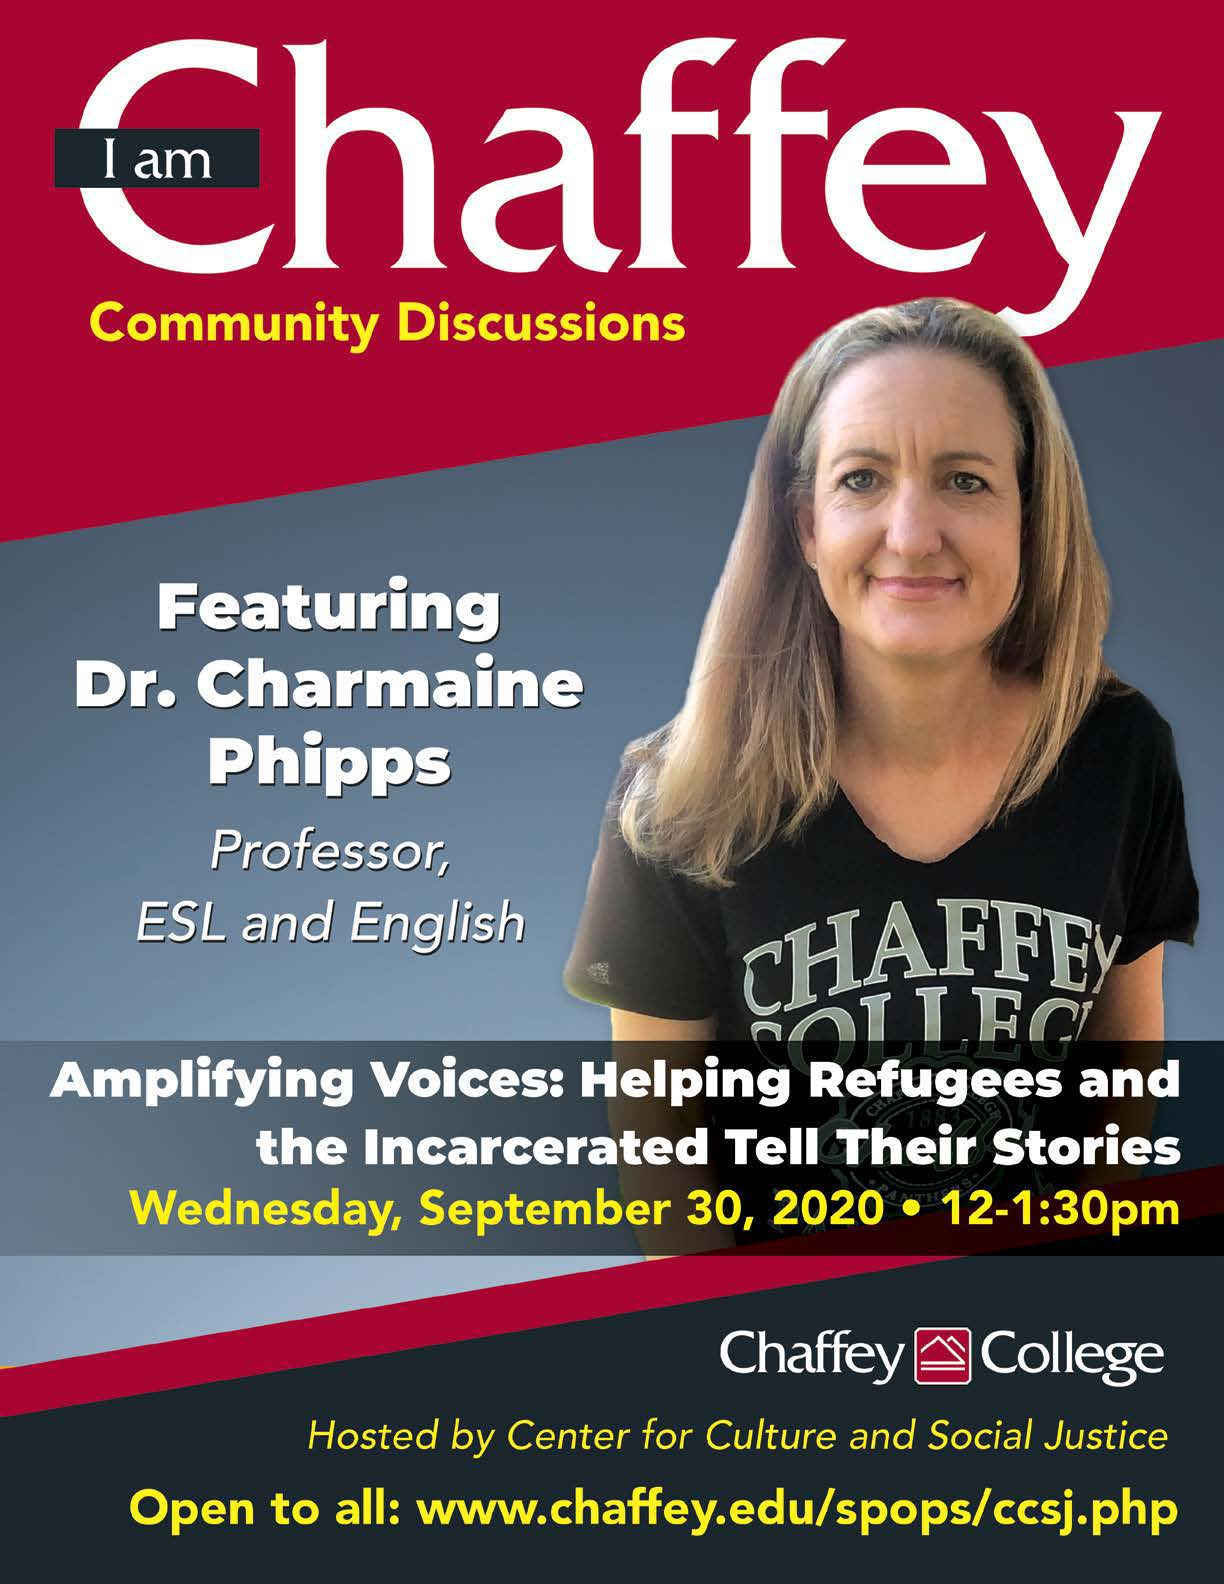 I am Chaffey Community Discussions Amplifying Voices: Helping Refugees and the Incarcerated Tell Their Stories